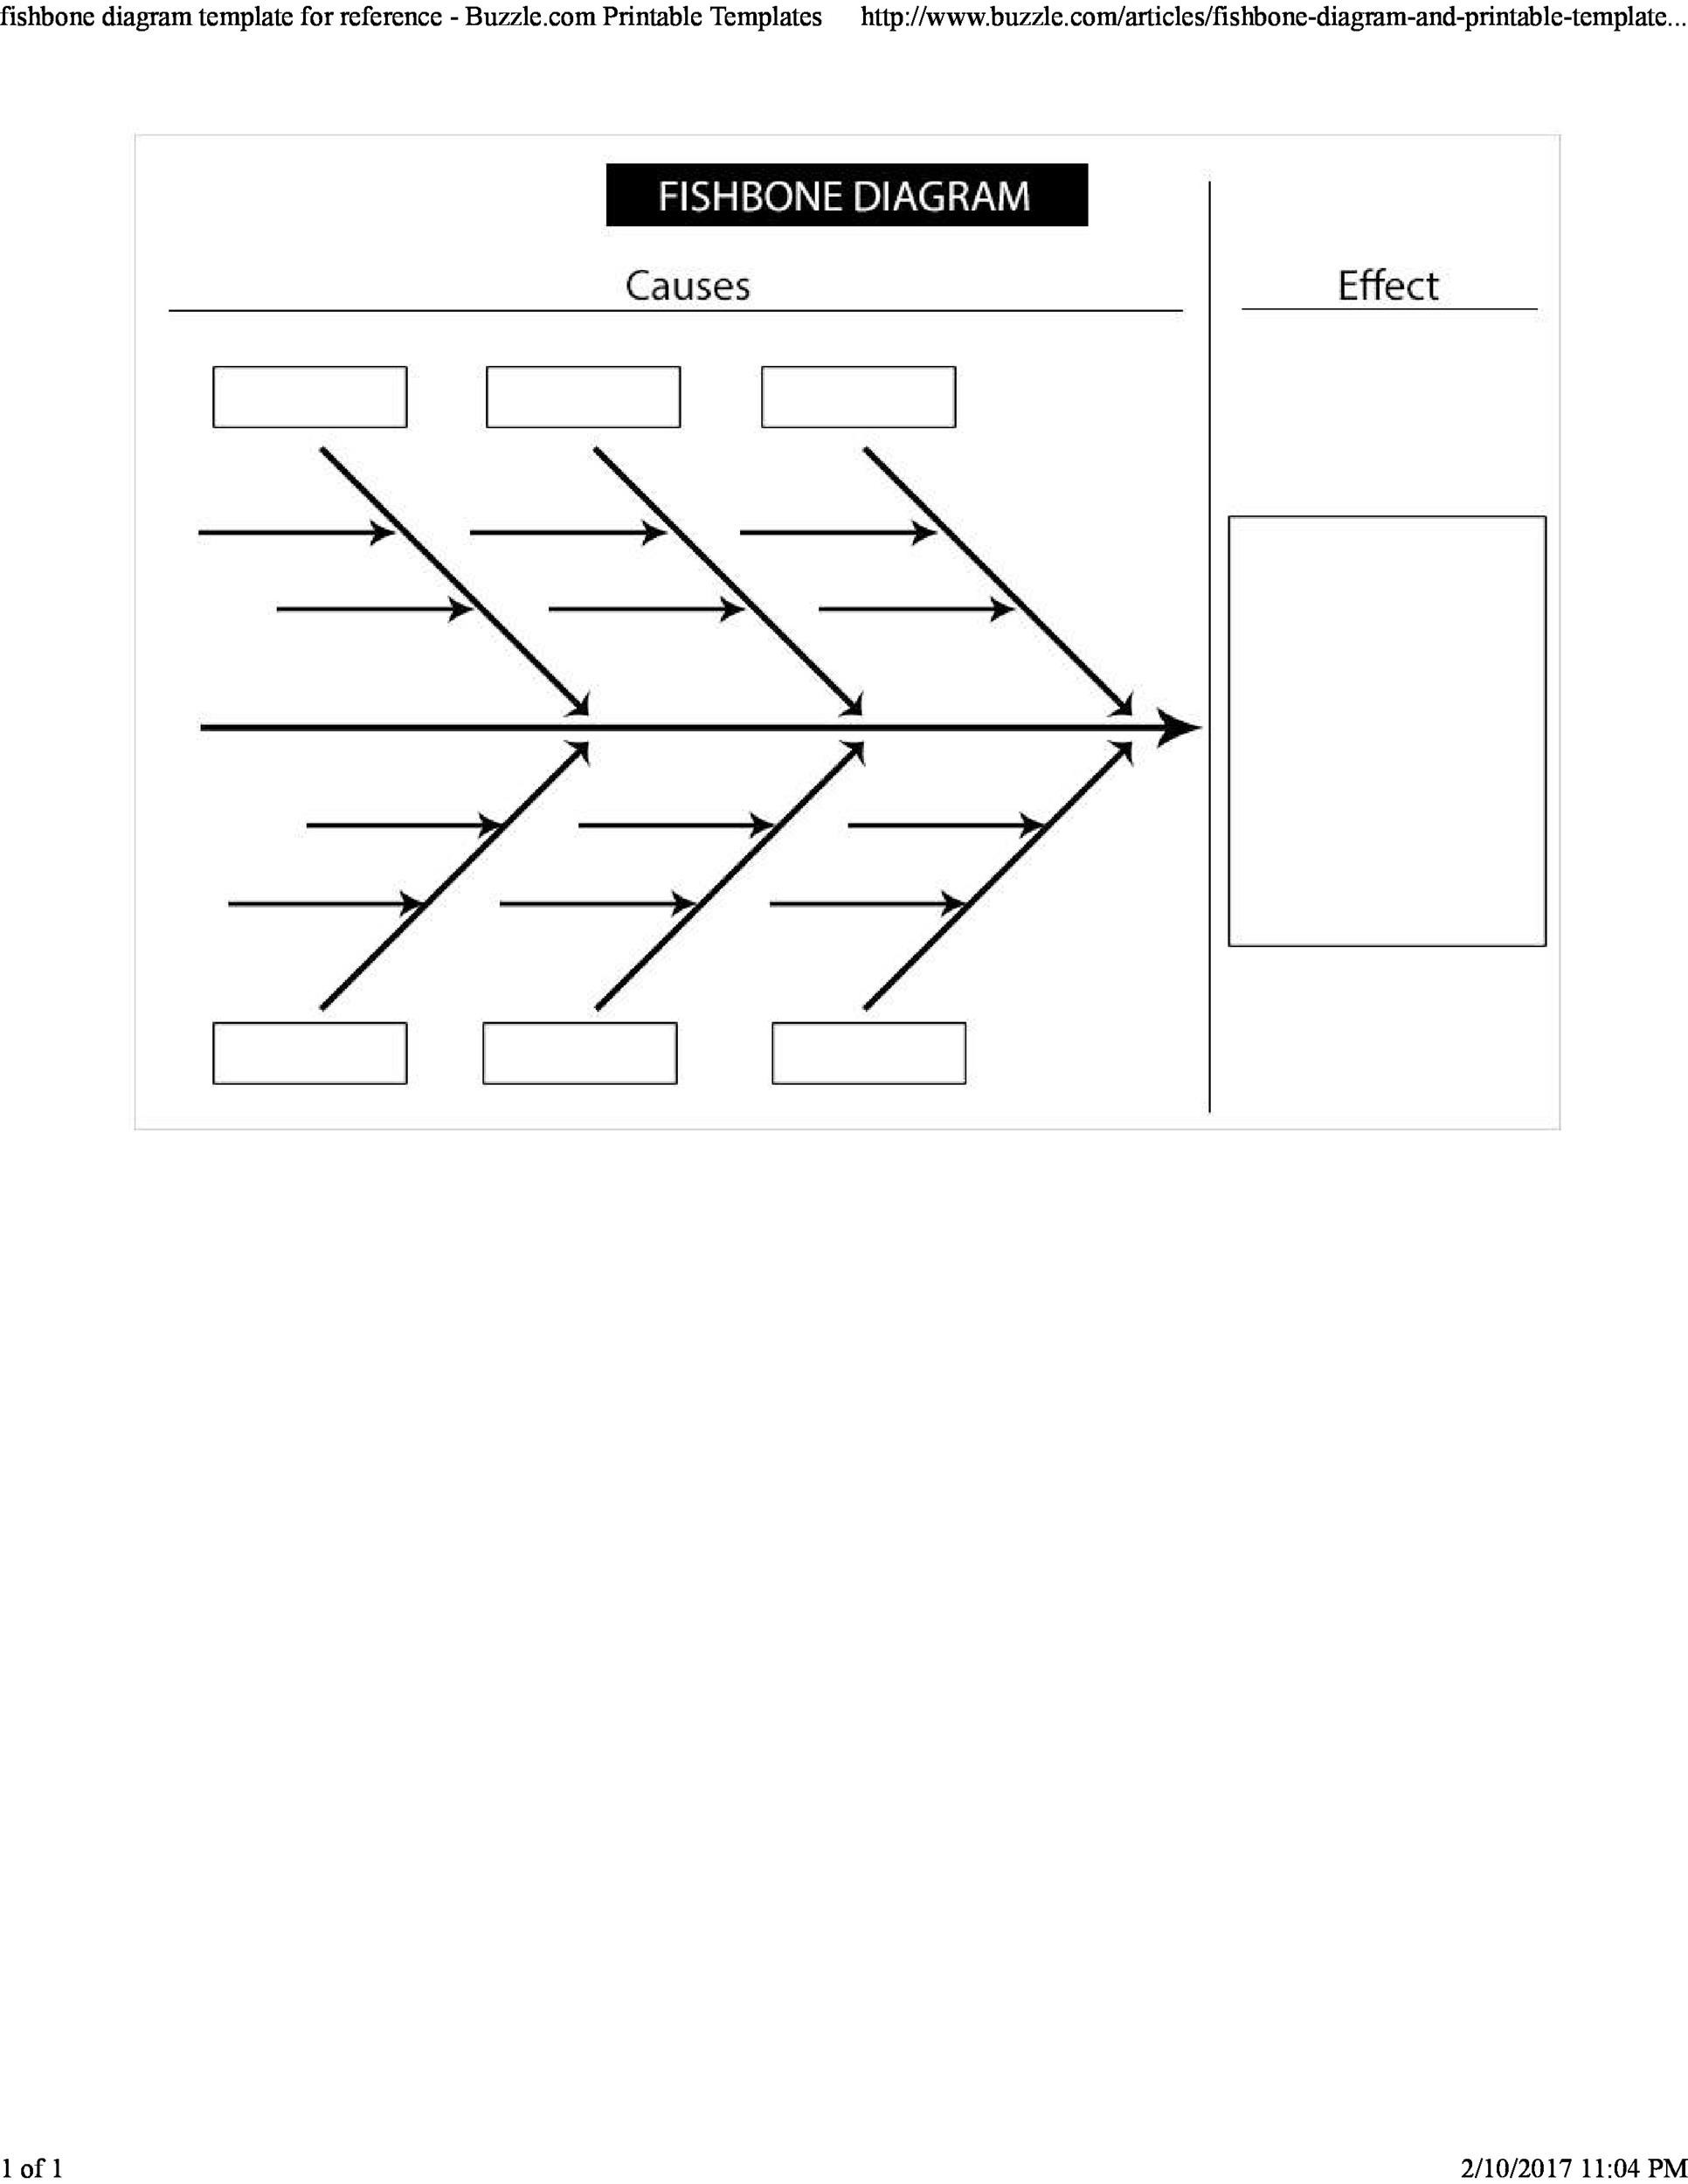 43 Great Fishbone Diagram Templates  Examples Word, Excel - fishbone template